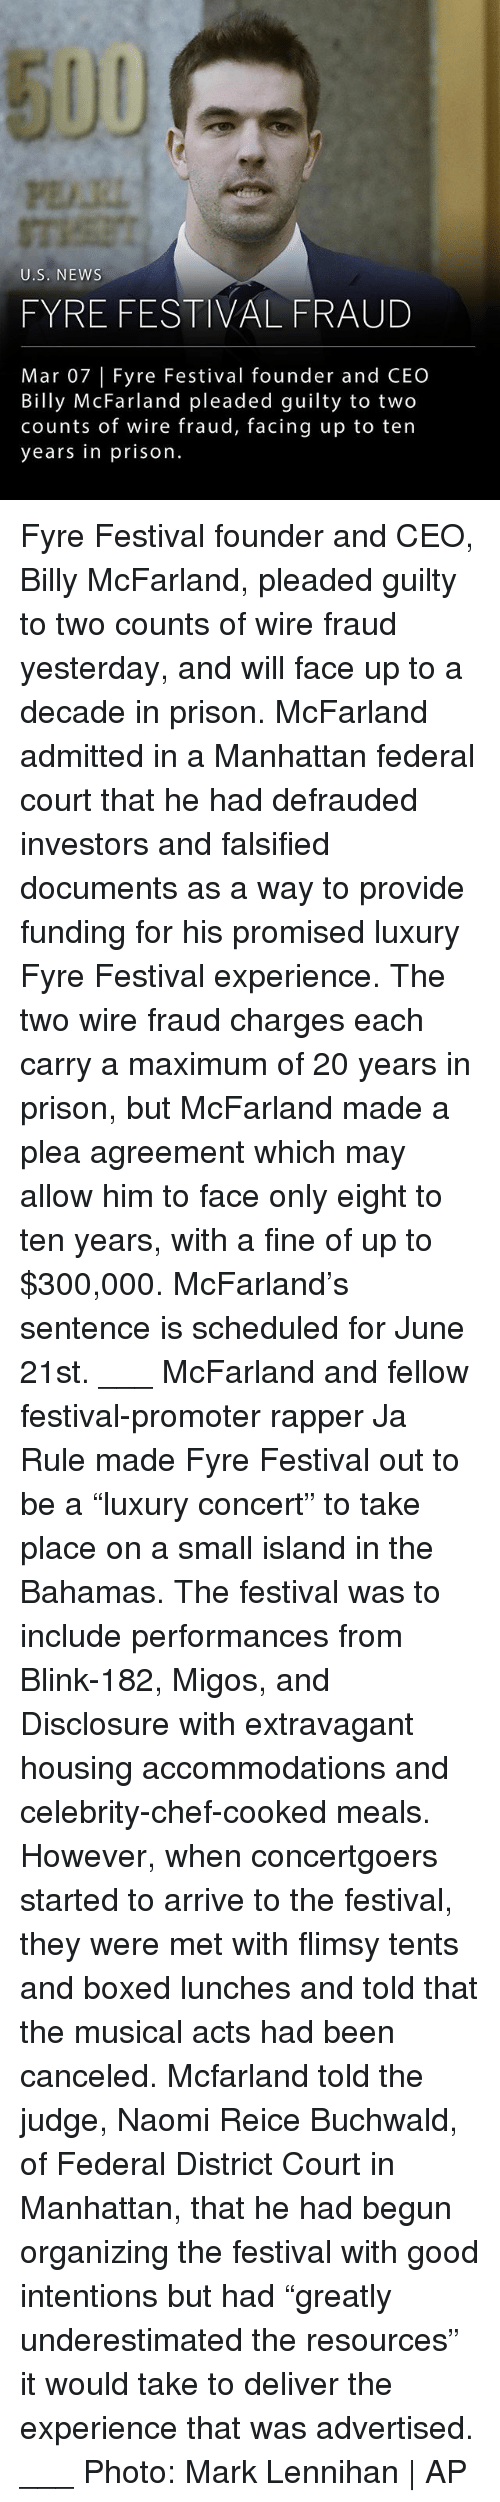 "Ja Rule, Memes, and Migos: PE.RI  U.S. NEWS  FYRE FESTIVAL FRAUD  Mar 07 | Fyre Festival founder and CEO  Billy McFarland pleaded guilty to two  counts of wire fraud, facing up to ten  years in prison. Fyre Festival founder and CEO, Billy McFarland, pleaded guilty to two counts of wire fraud yesterday, and will face up to a decade in prison. McFarland admitted in a Manhattan federal court that he had defrauded investors and falsified documents as a way to provide funding for his promised luxury Fyre Festival experience. The two wire fraud charges each carry a maximum of 20 years in prison, but McFarland made a plea agreement which may allow him to face only eight to ten years, with a fine of up to $300,000. McFarland's sentence is scheduled for June 21st. ___ McFarland and fellow festival-promoter rapper Ja Rule made Fyre Festival out to be a ""luxury concert"" to take place on a small island in the Bahamas. The festival was to include performances from Blink-182, Migos, and Disclosure with extravagant housing accommodations and celebrity-chef-cooked meals. However, when concertgoers started to arrive to the festival, they were met with flimsy tents and boxed lunches and told that the musical acts had been canceled. Mcfarland told the judge, Naomi Reice Buchwald, of Federal District Court in Manhattan, that he had begun organizing the festival with good intentions but had ""greatly underestimated the resources"" it would take to deliver the experience that was advertised. ___ Photo: Mark Lennihan 